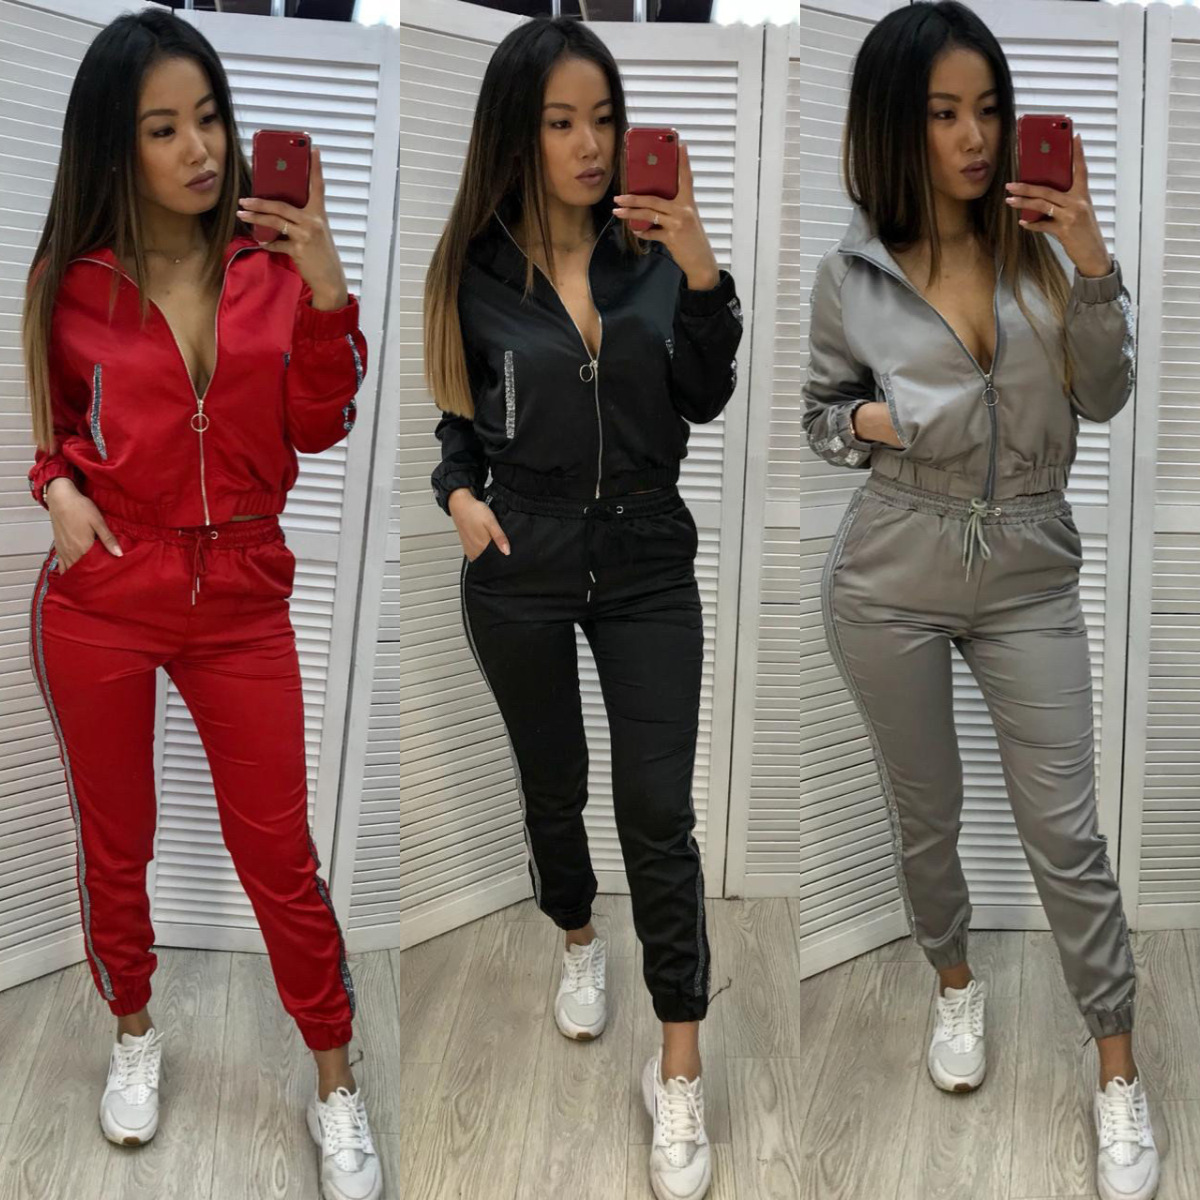 Sfit 2019 Women Two Piece Set Winter Sports Suit For Women Office Lady Loose Casual Female Zipper Sports Suit Fashion Tracksuit